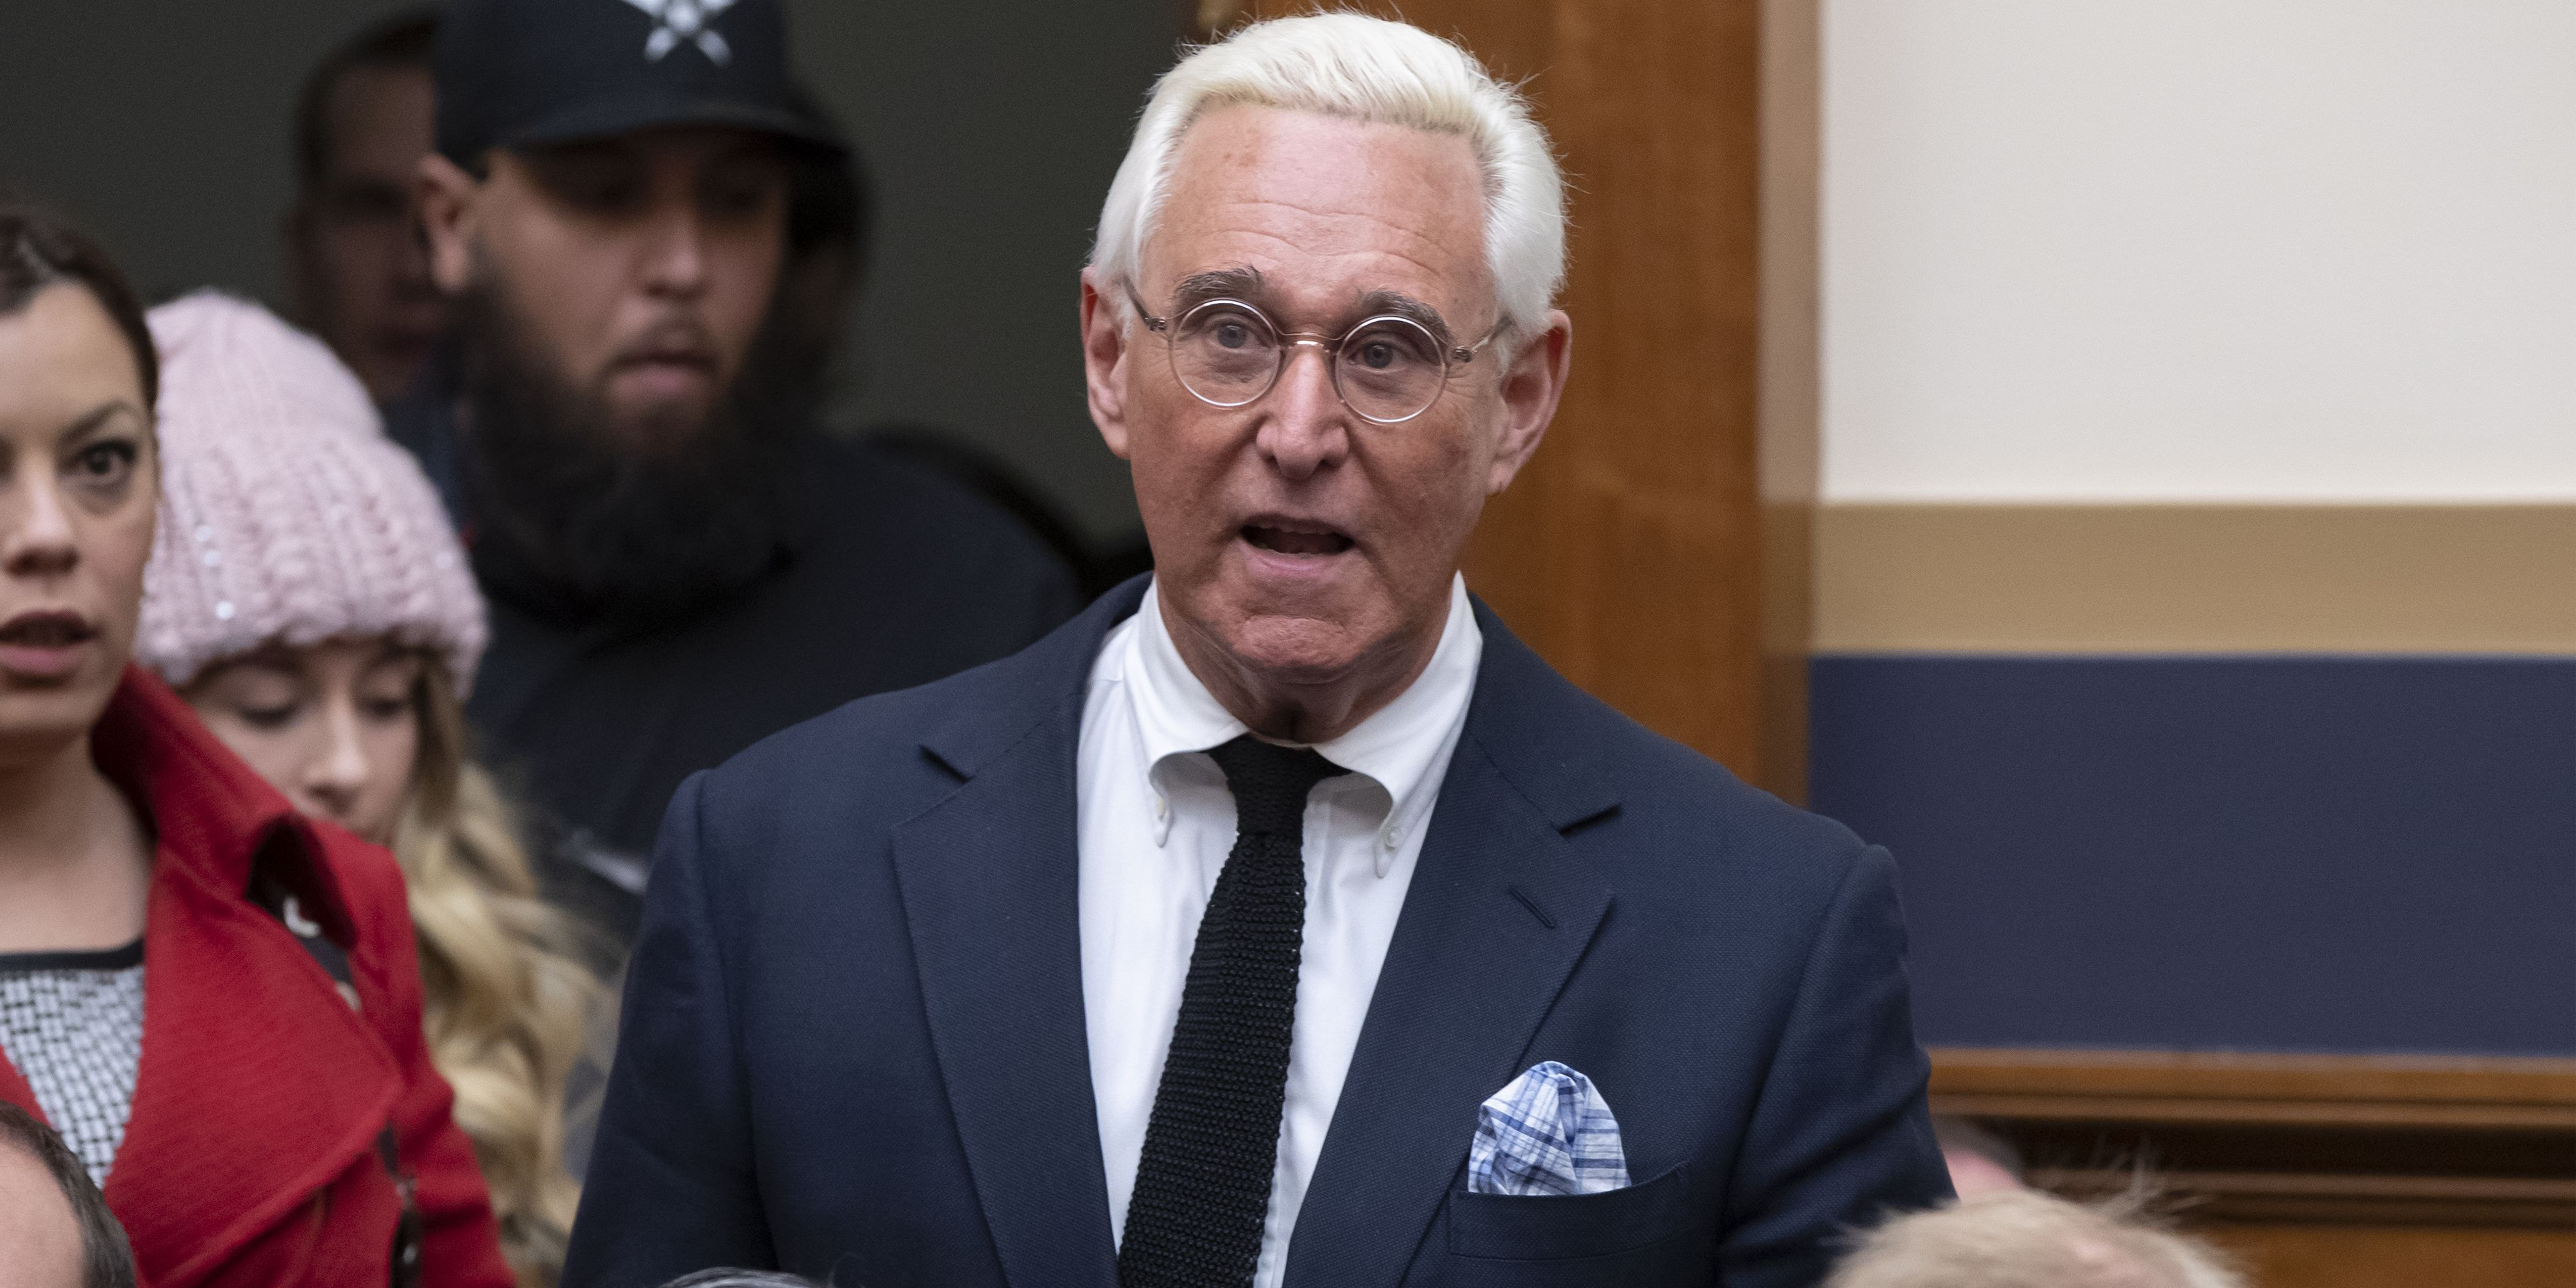 Roger Stone charged in Russia probe, vows to fight prosecution